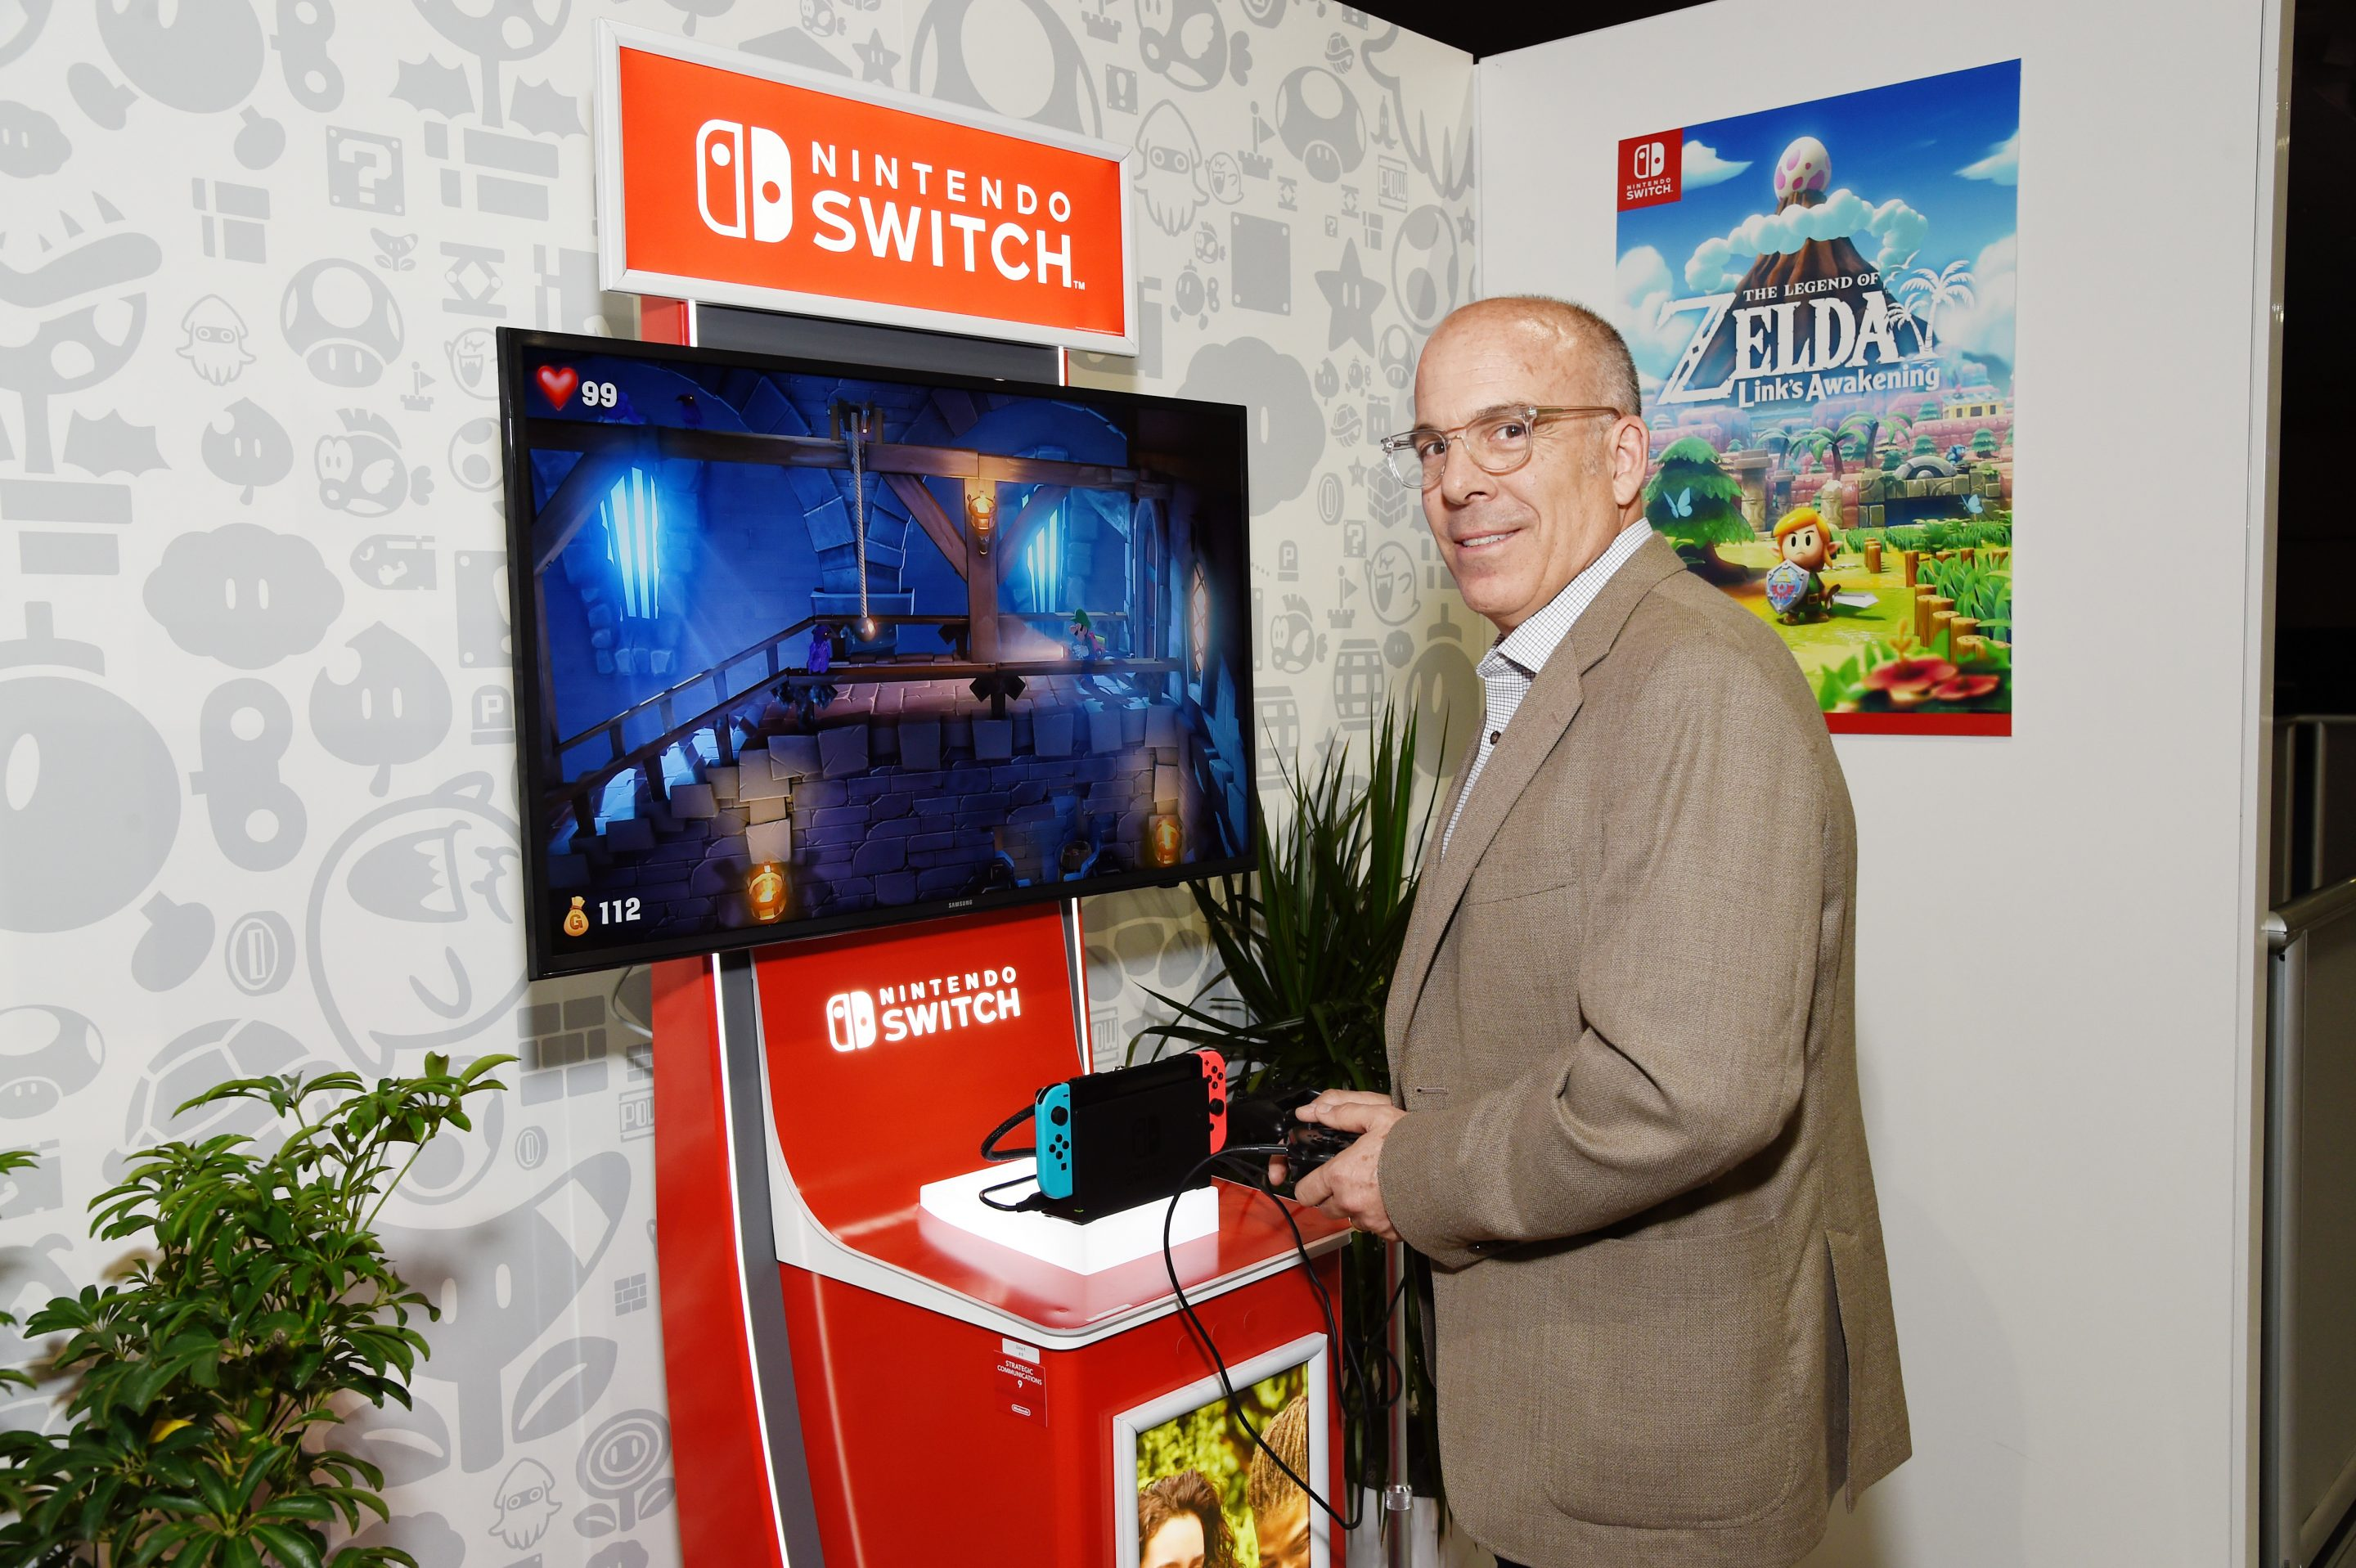 LOS ANGELES, CALIFORNIA - JUNE 13: Nintendo of America President and COO Doug Bowser checks out 'Luigi's Mansion 3' for the Nintendo Switch system during the 2019 E3 Gaming Convention at the Los Angeles Convention Center on June 13, 2019 in Los Angeles, California. While its competitors look to mainstream streaming games, Nintendo continues to perfect the portable video game console. (Photo by Michael Kovac/Getty Images for Nintendo)